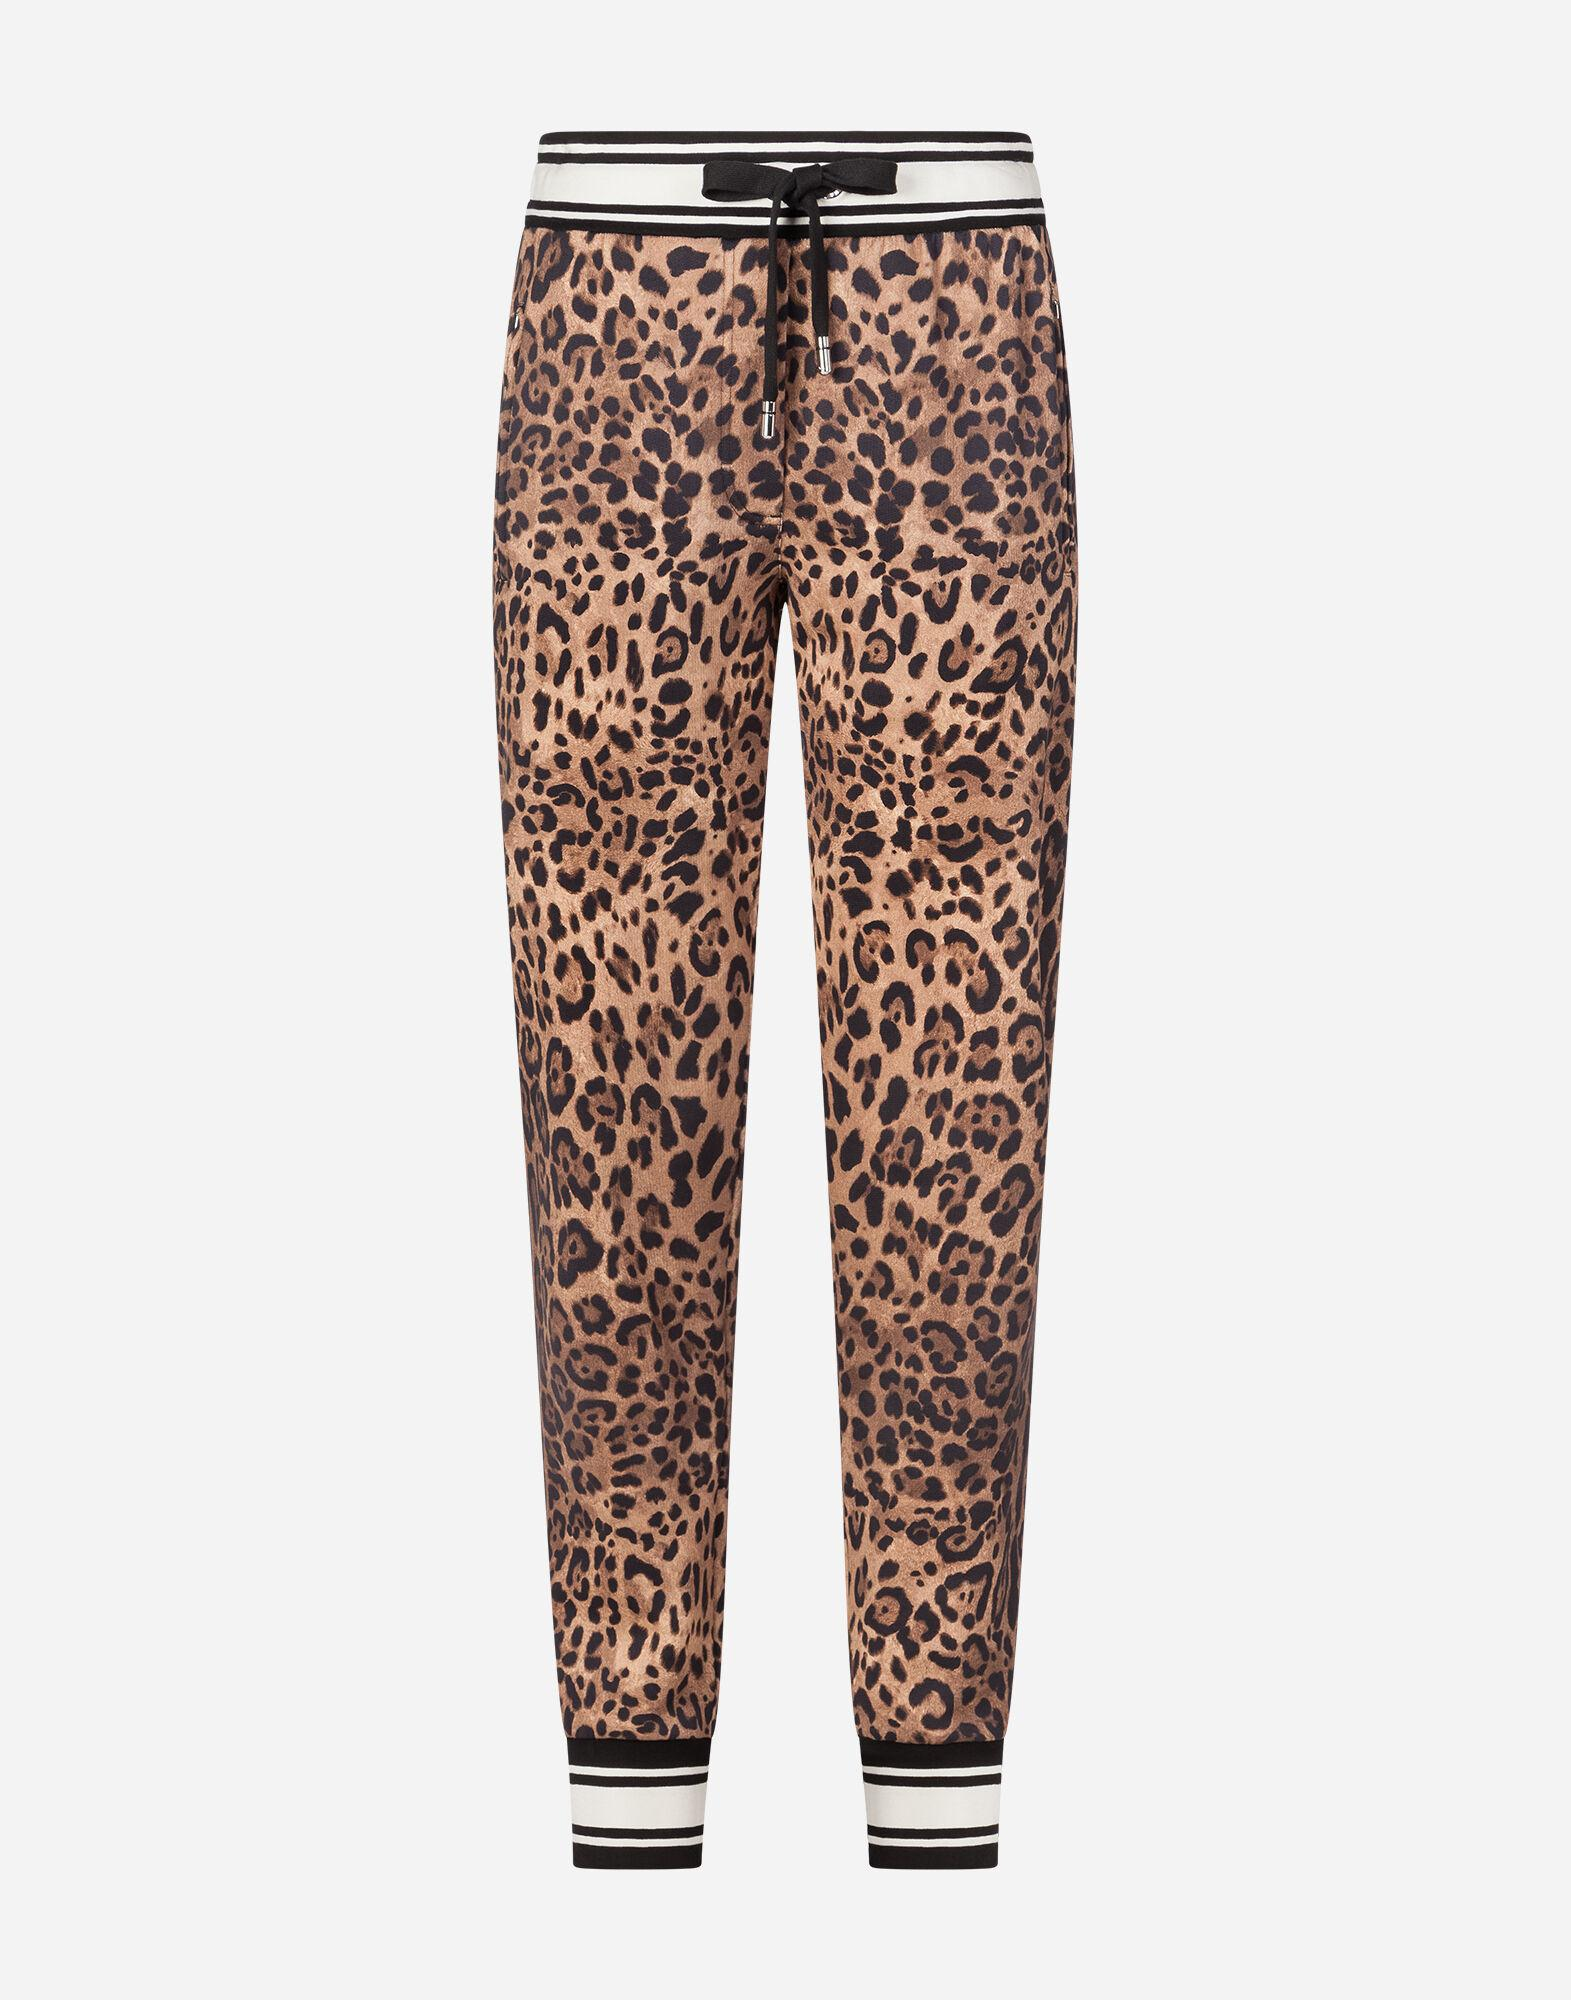 Jersey jogging pants with leopard print 3